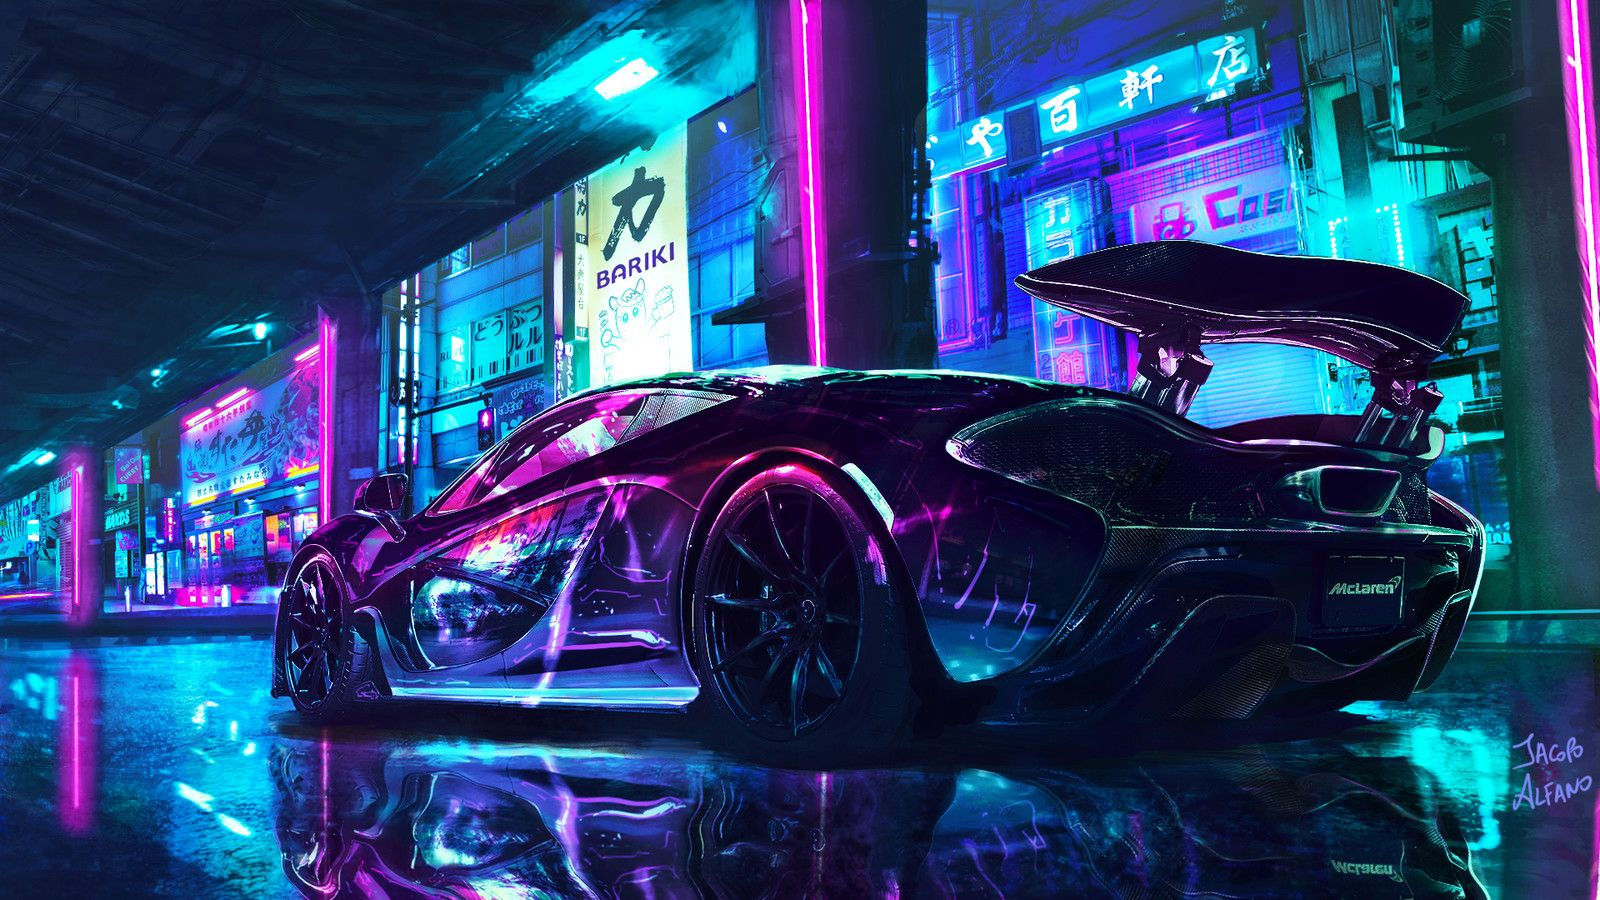 Cyberpunk Supercar Jacopo Alfano On Artstation At Https Www Artstation Com Artwork Y3bzk Neon Car Super Cars Supercars Wallpaper